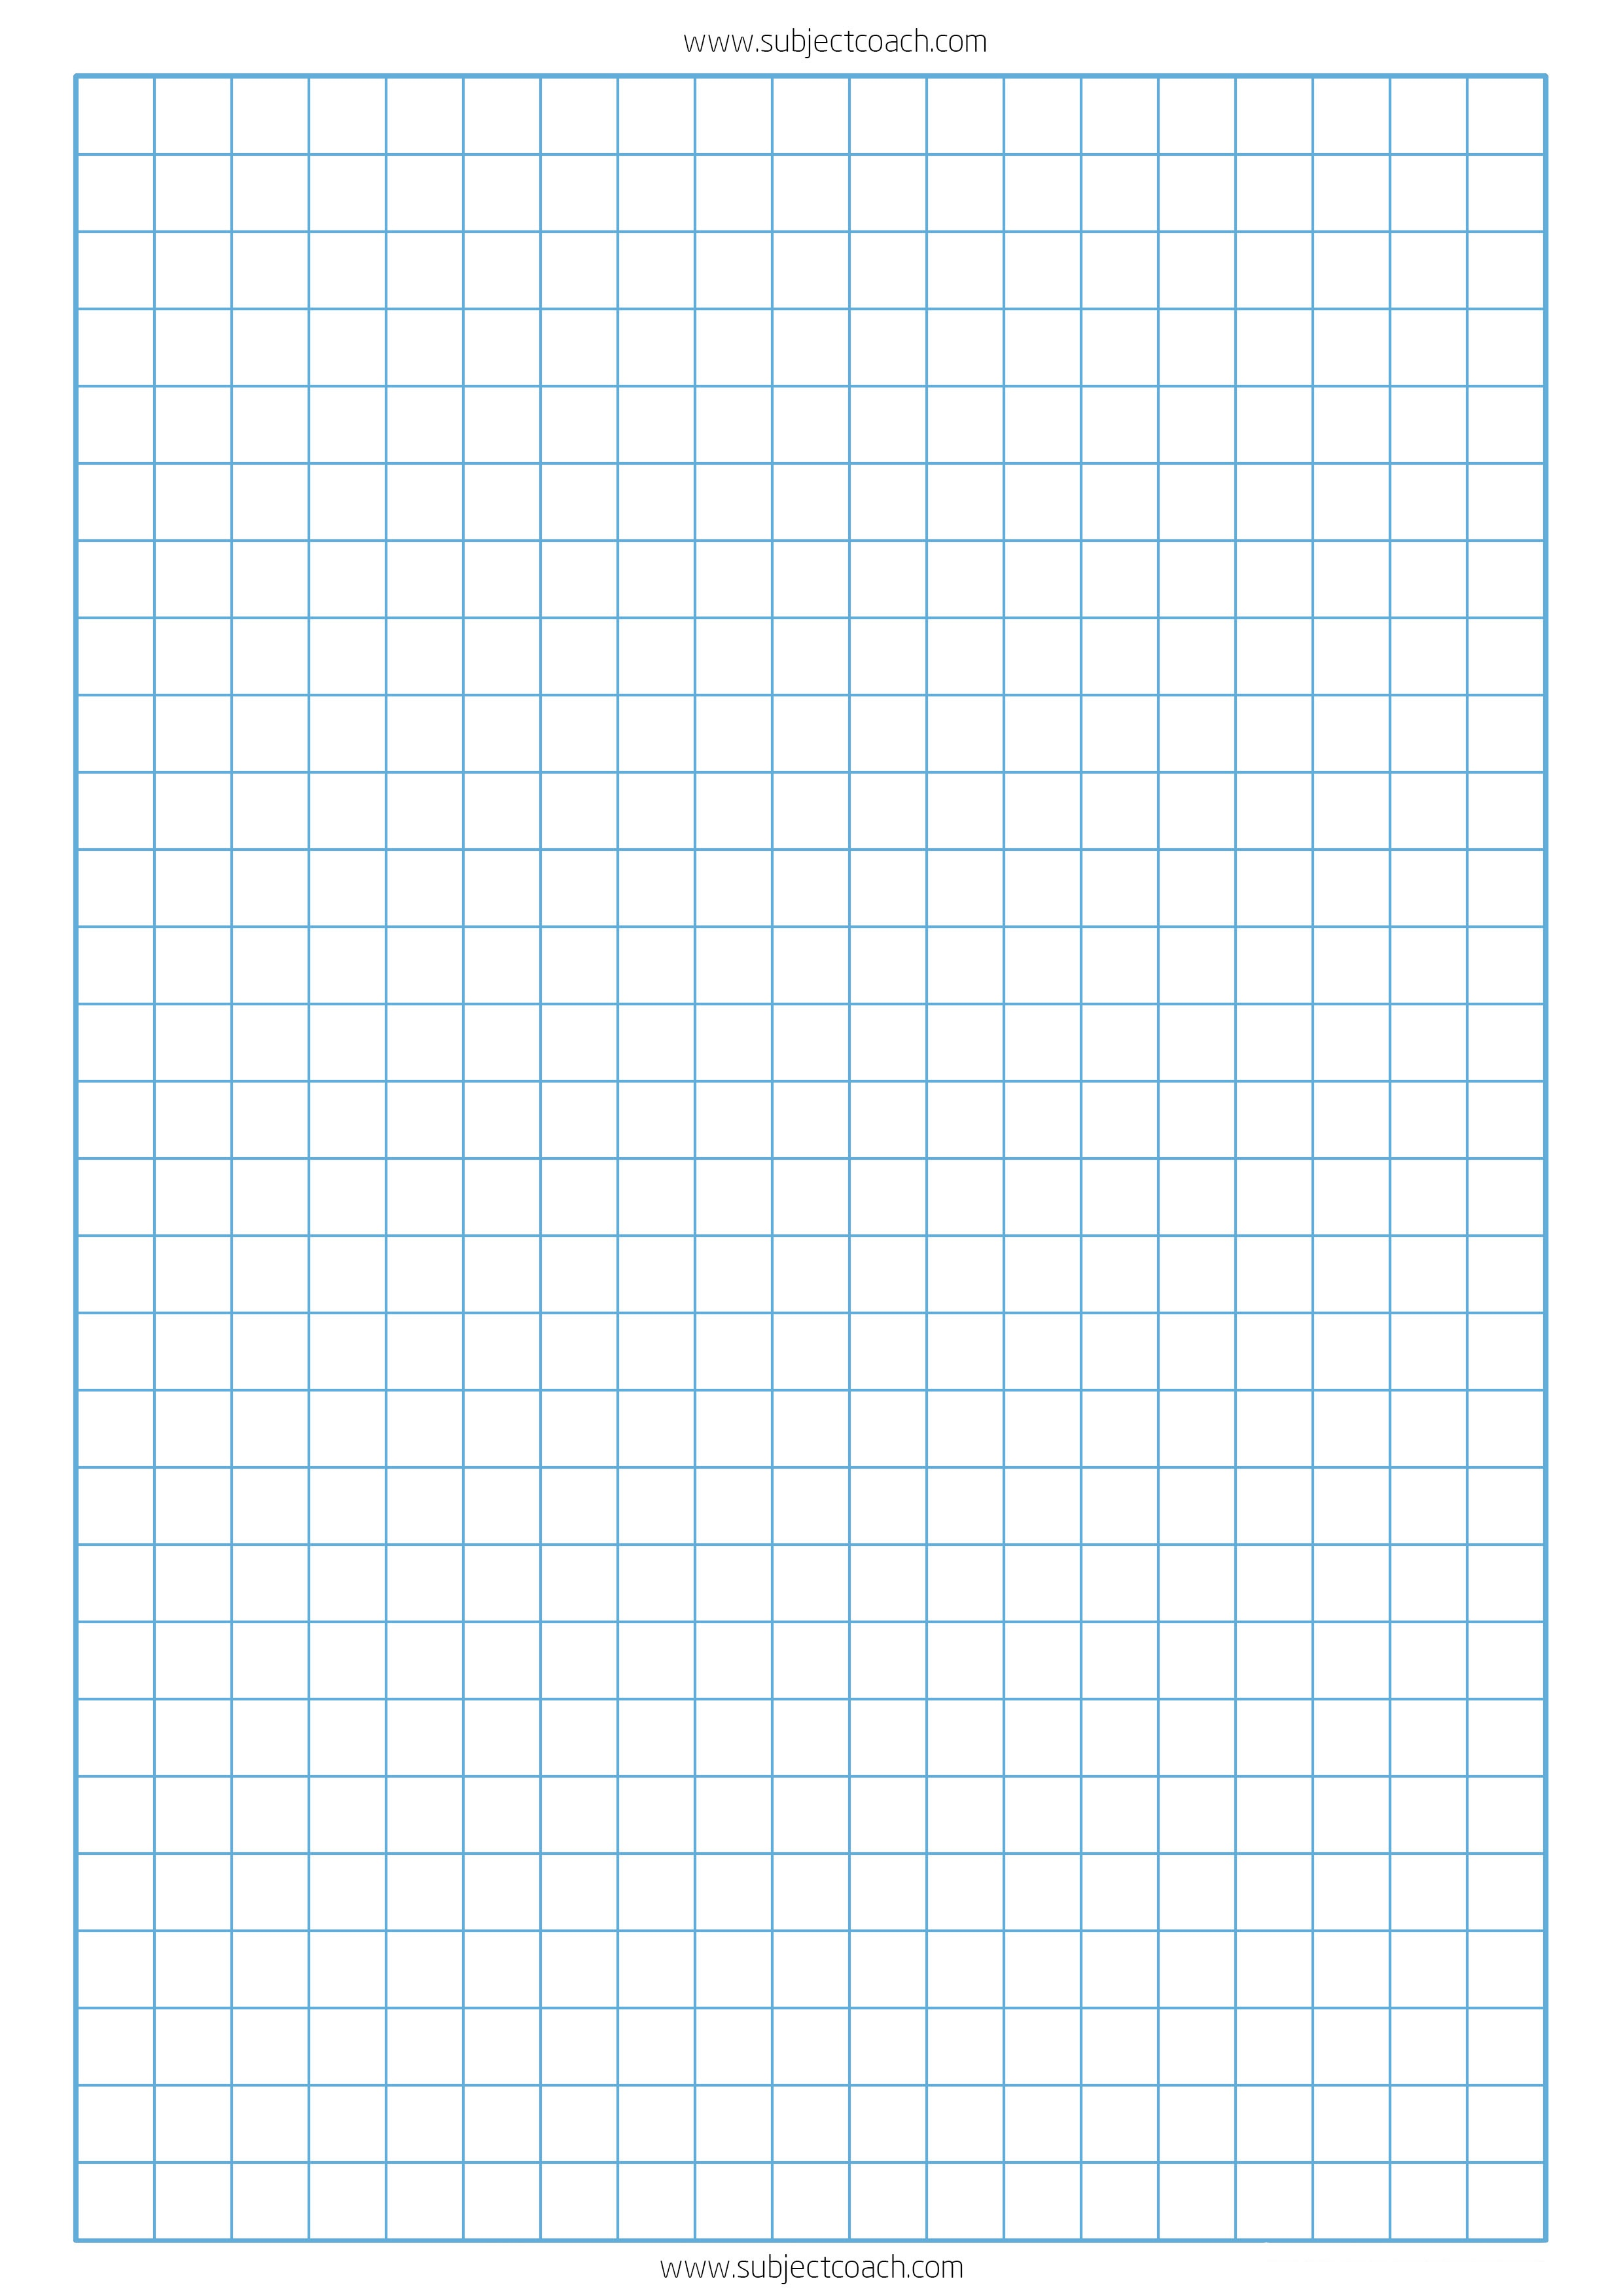 Free Printable Graph Paper 1Cm For A4 Paper | Subjectcoach - Free Printable Grid Paper